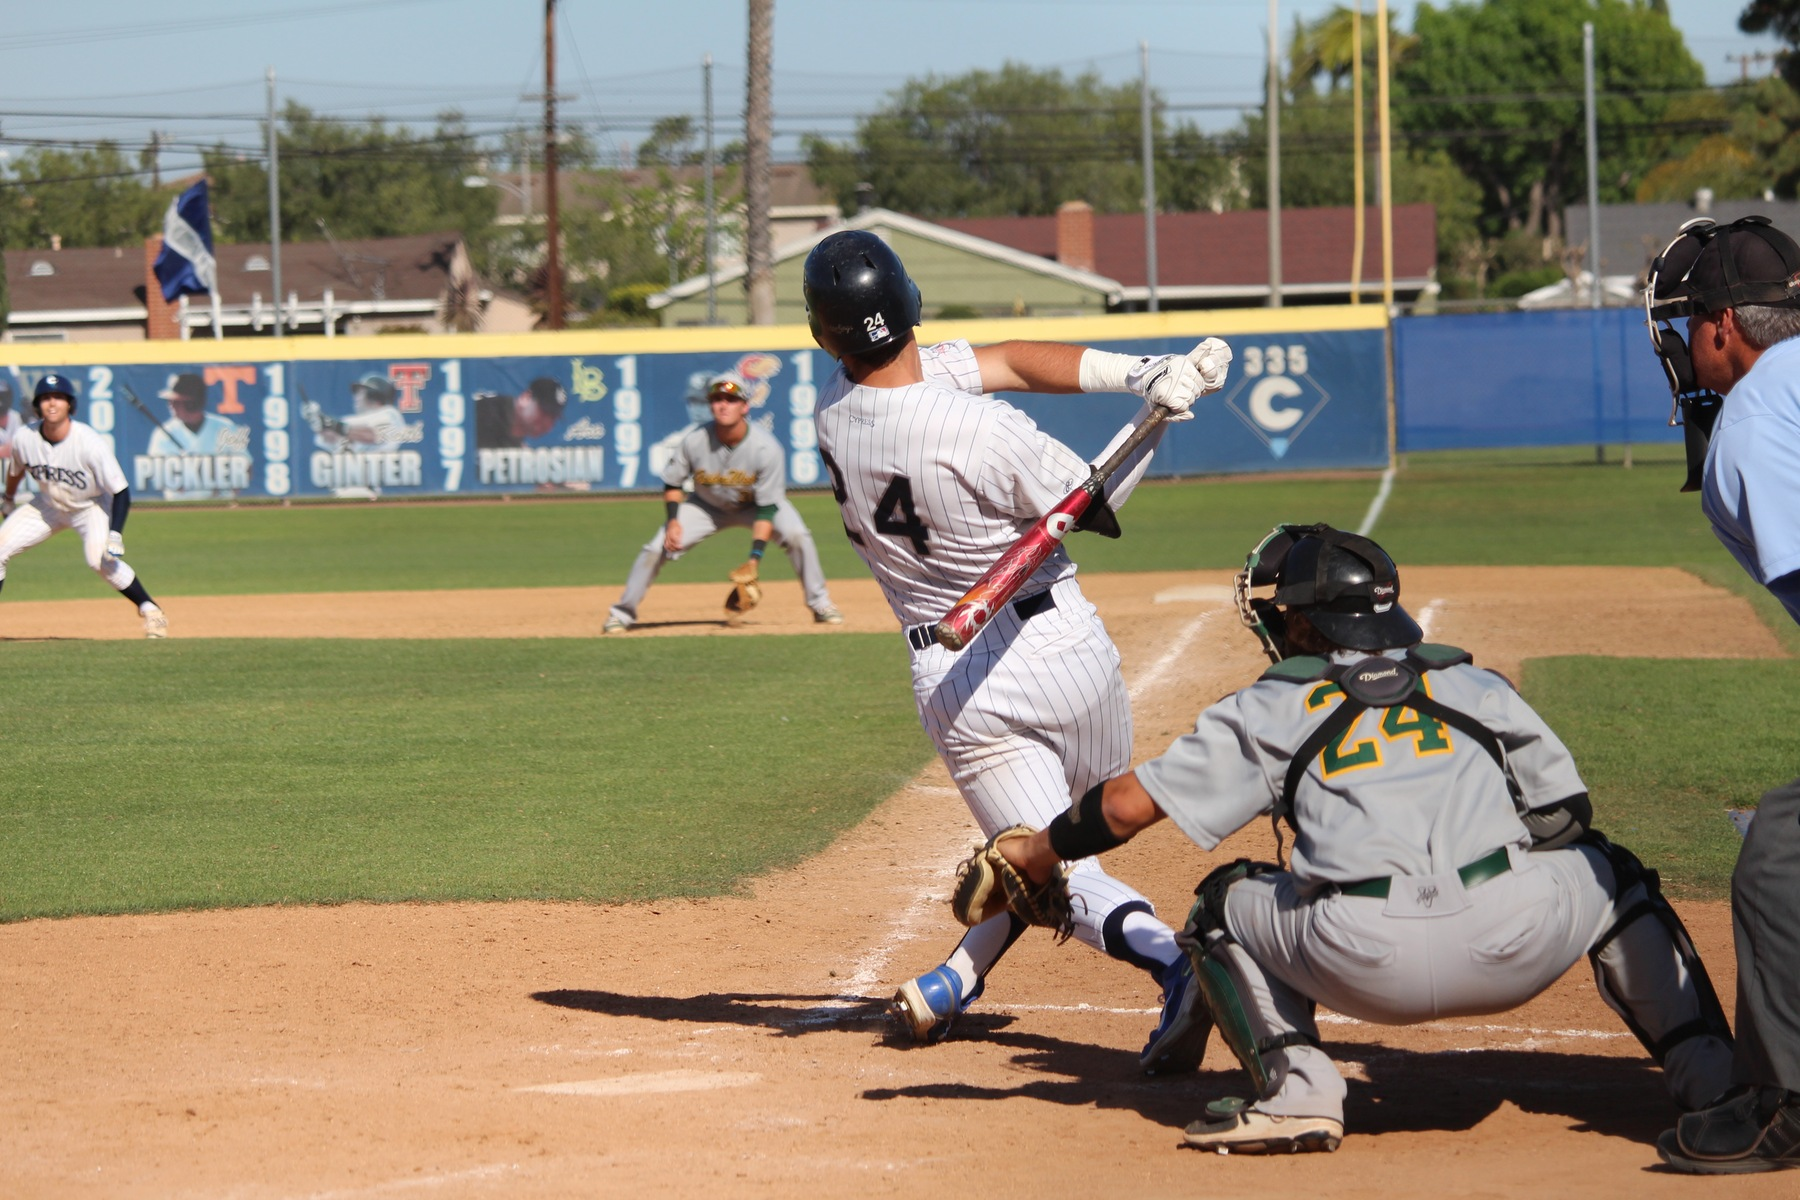 No. 5 Chargers Walk Off to 1-0 Win Over Lasers